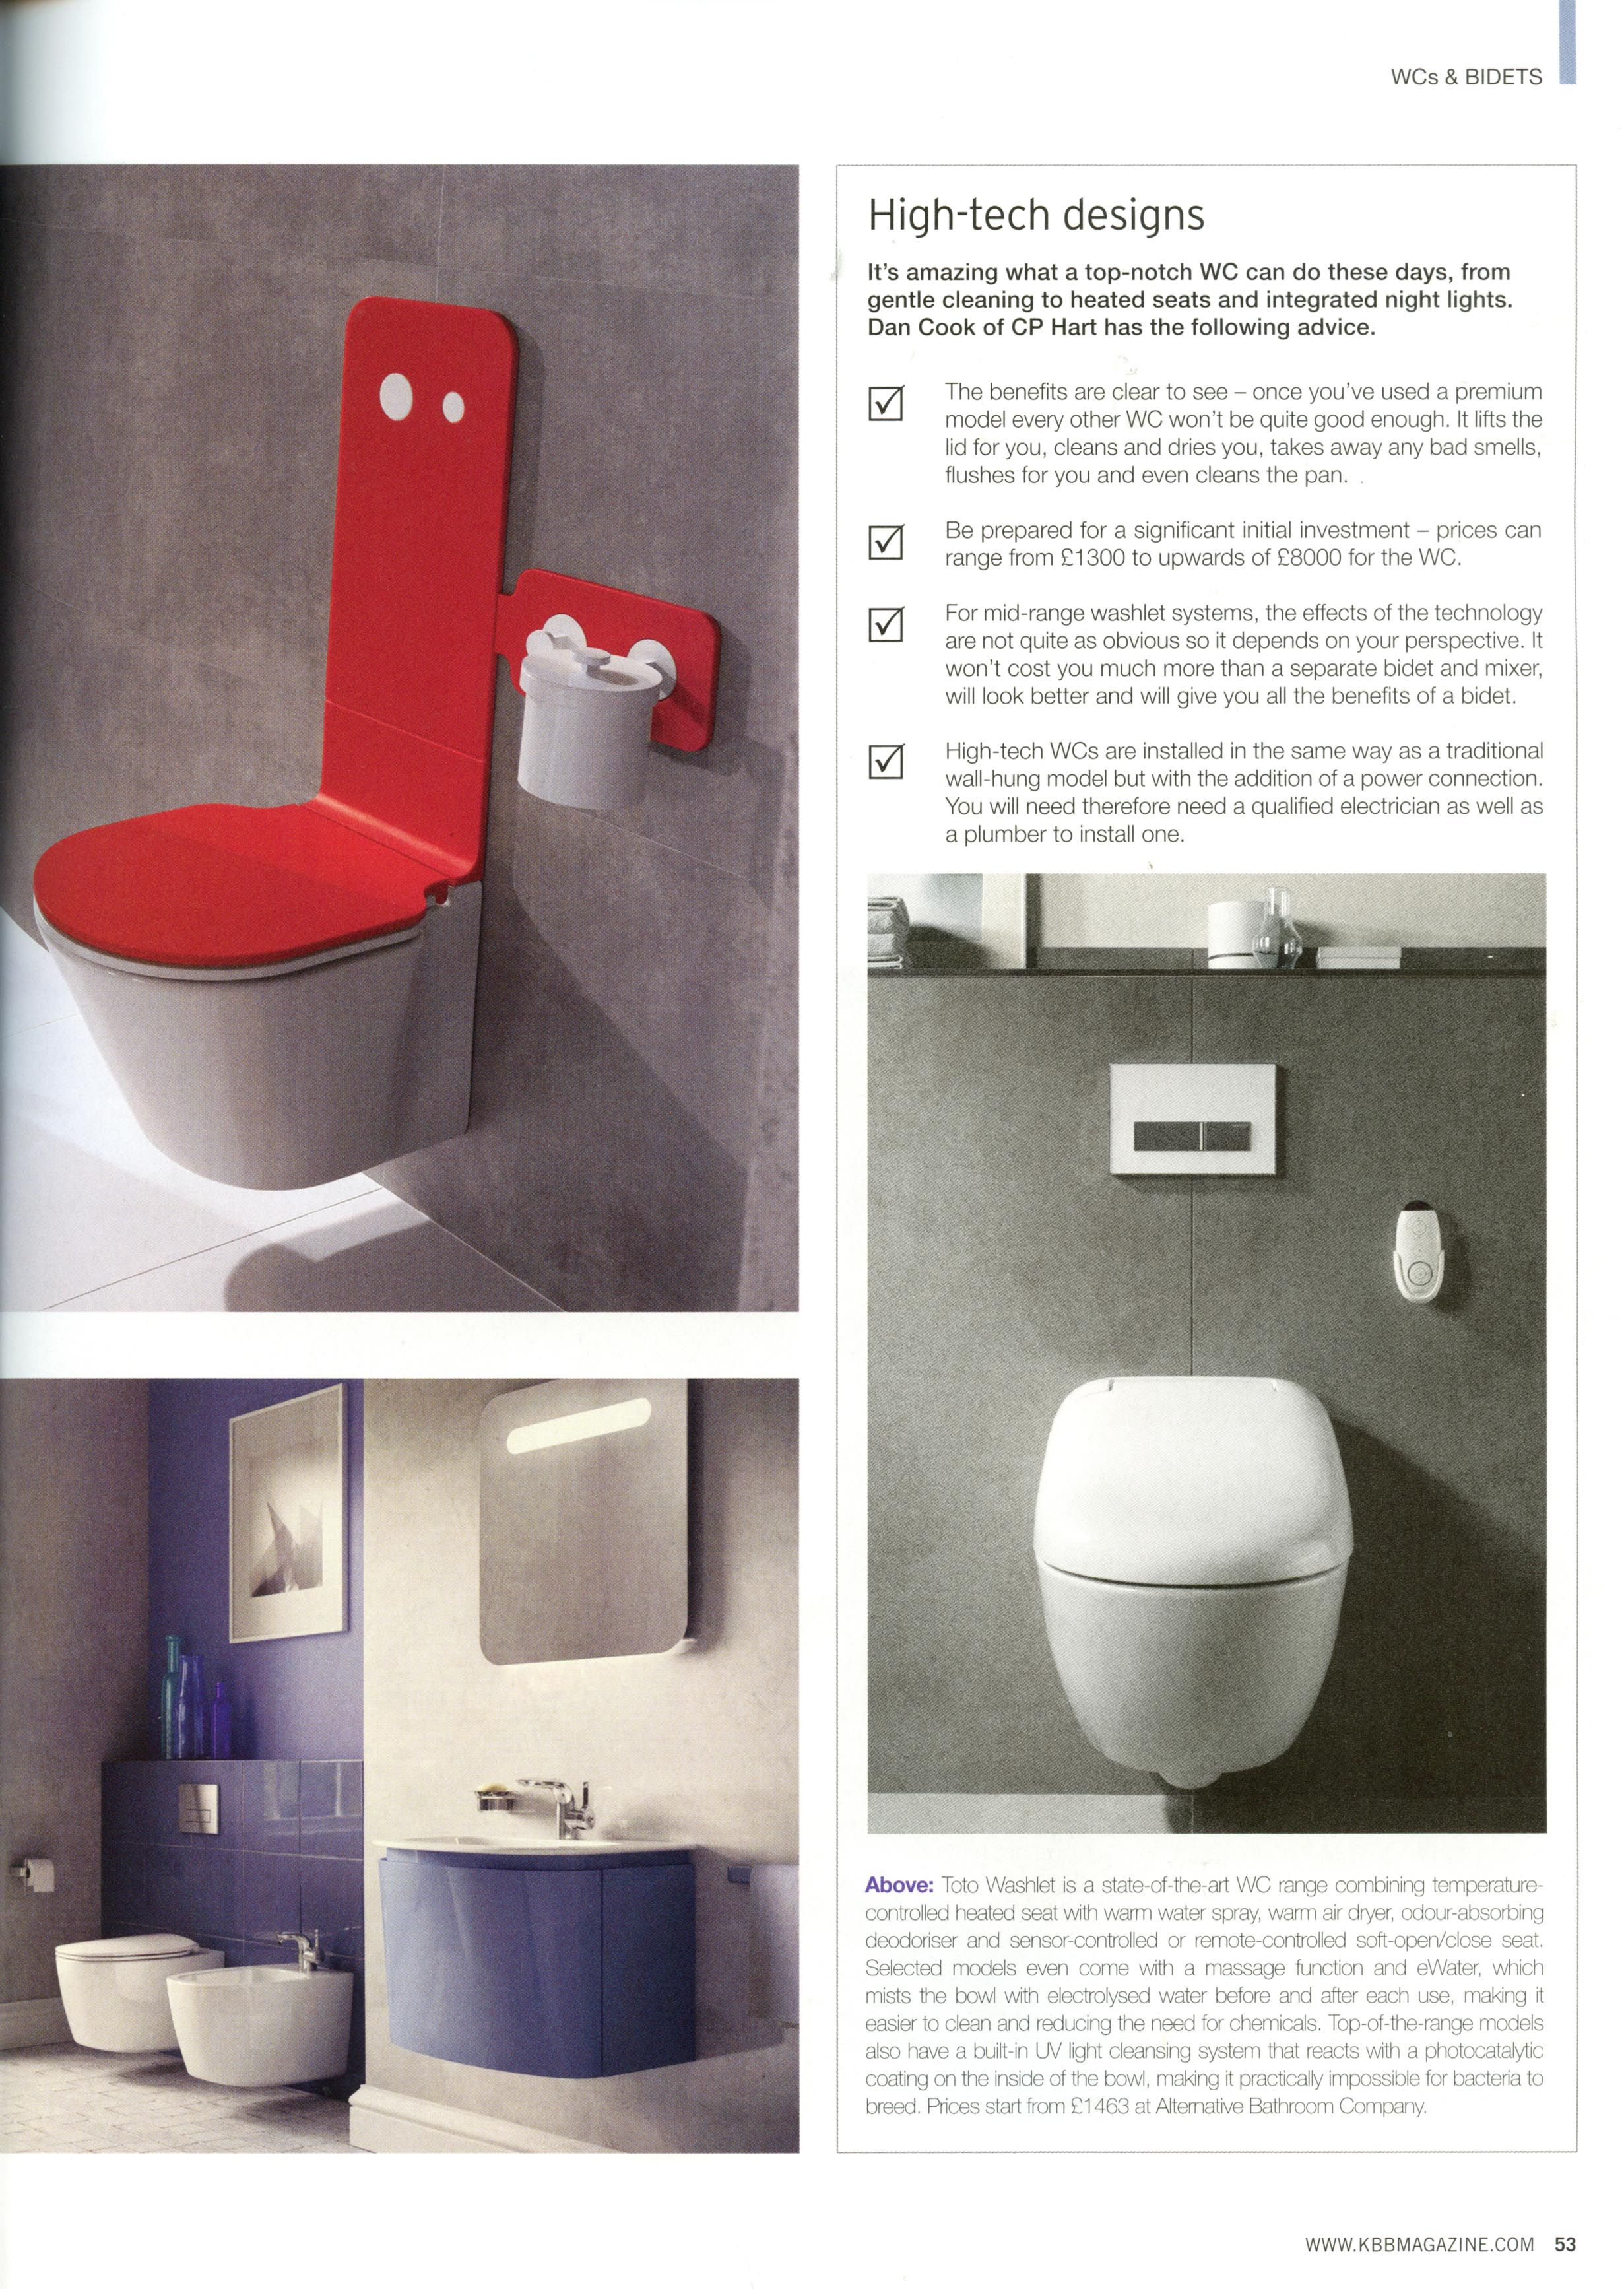 Toto washlet - state of the art toilet from Alternative Bathrooms ...